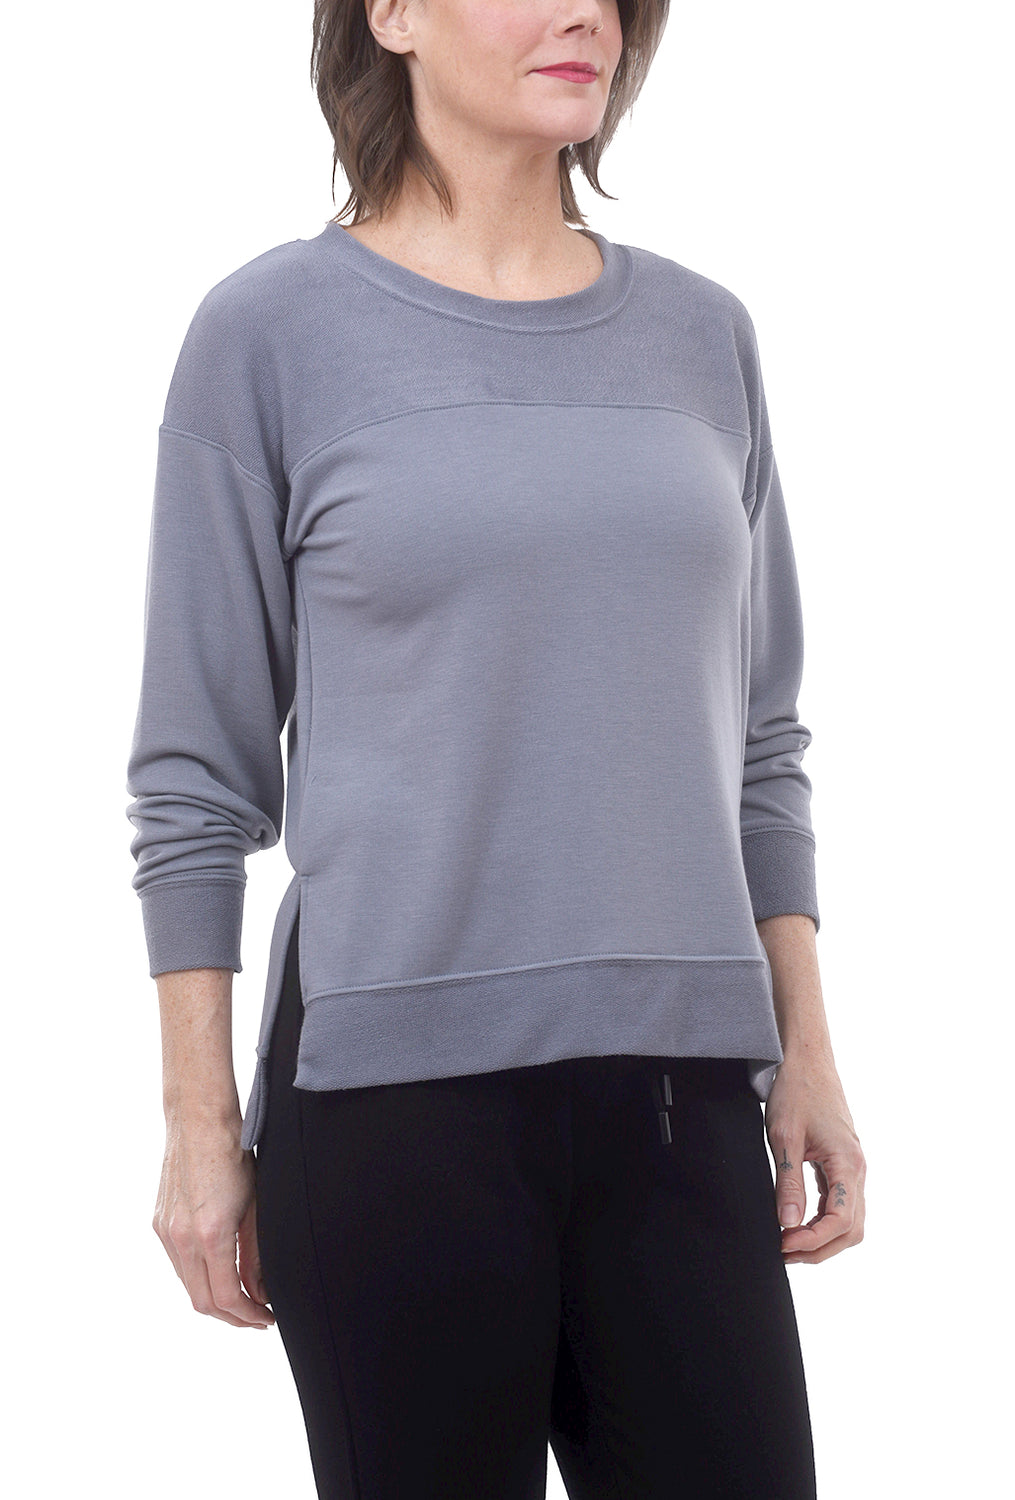 Nally & Millie FT Inside-Out Sweatshirt, Slate Gray